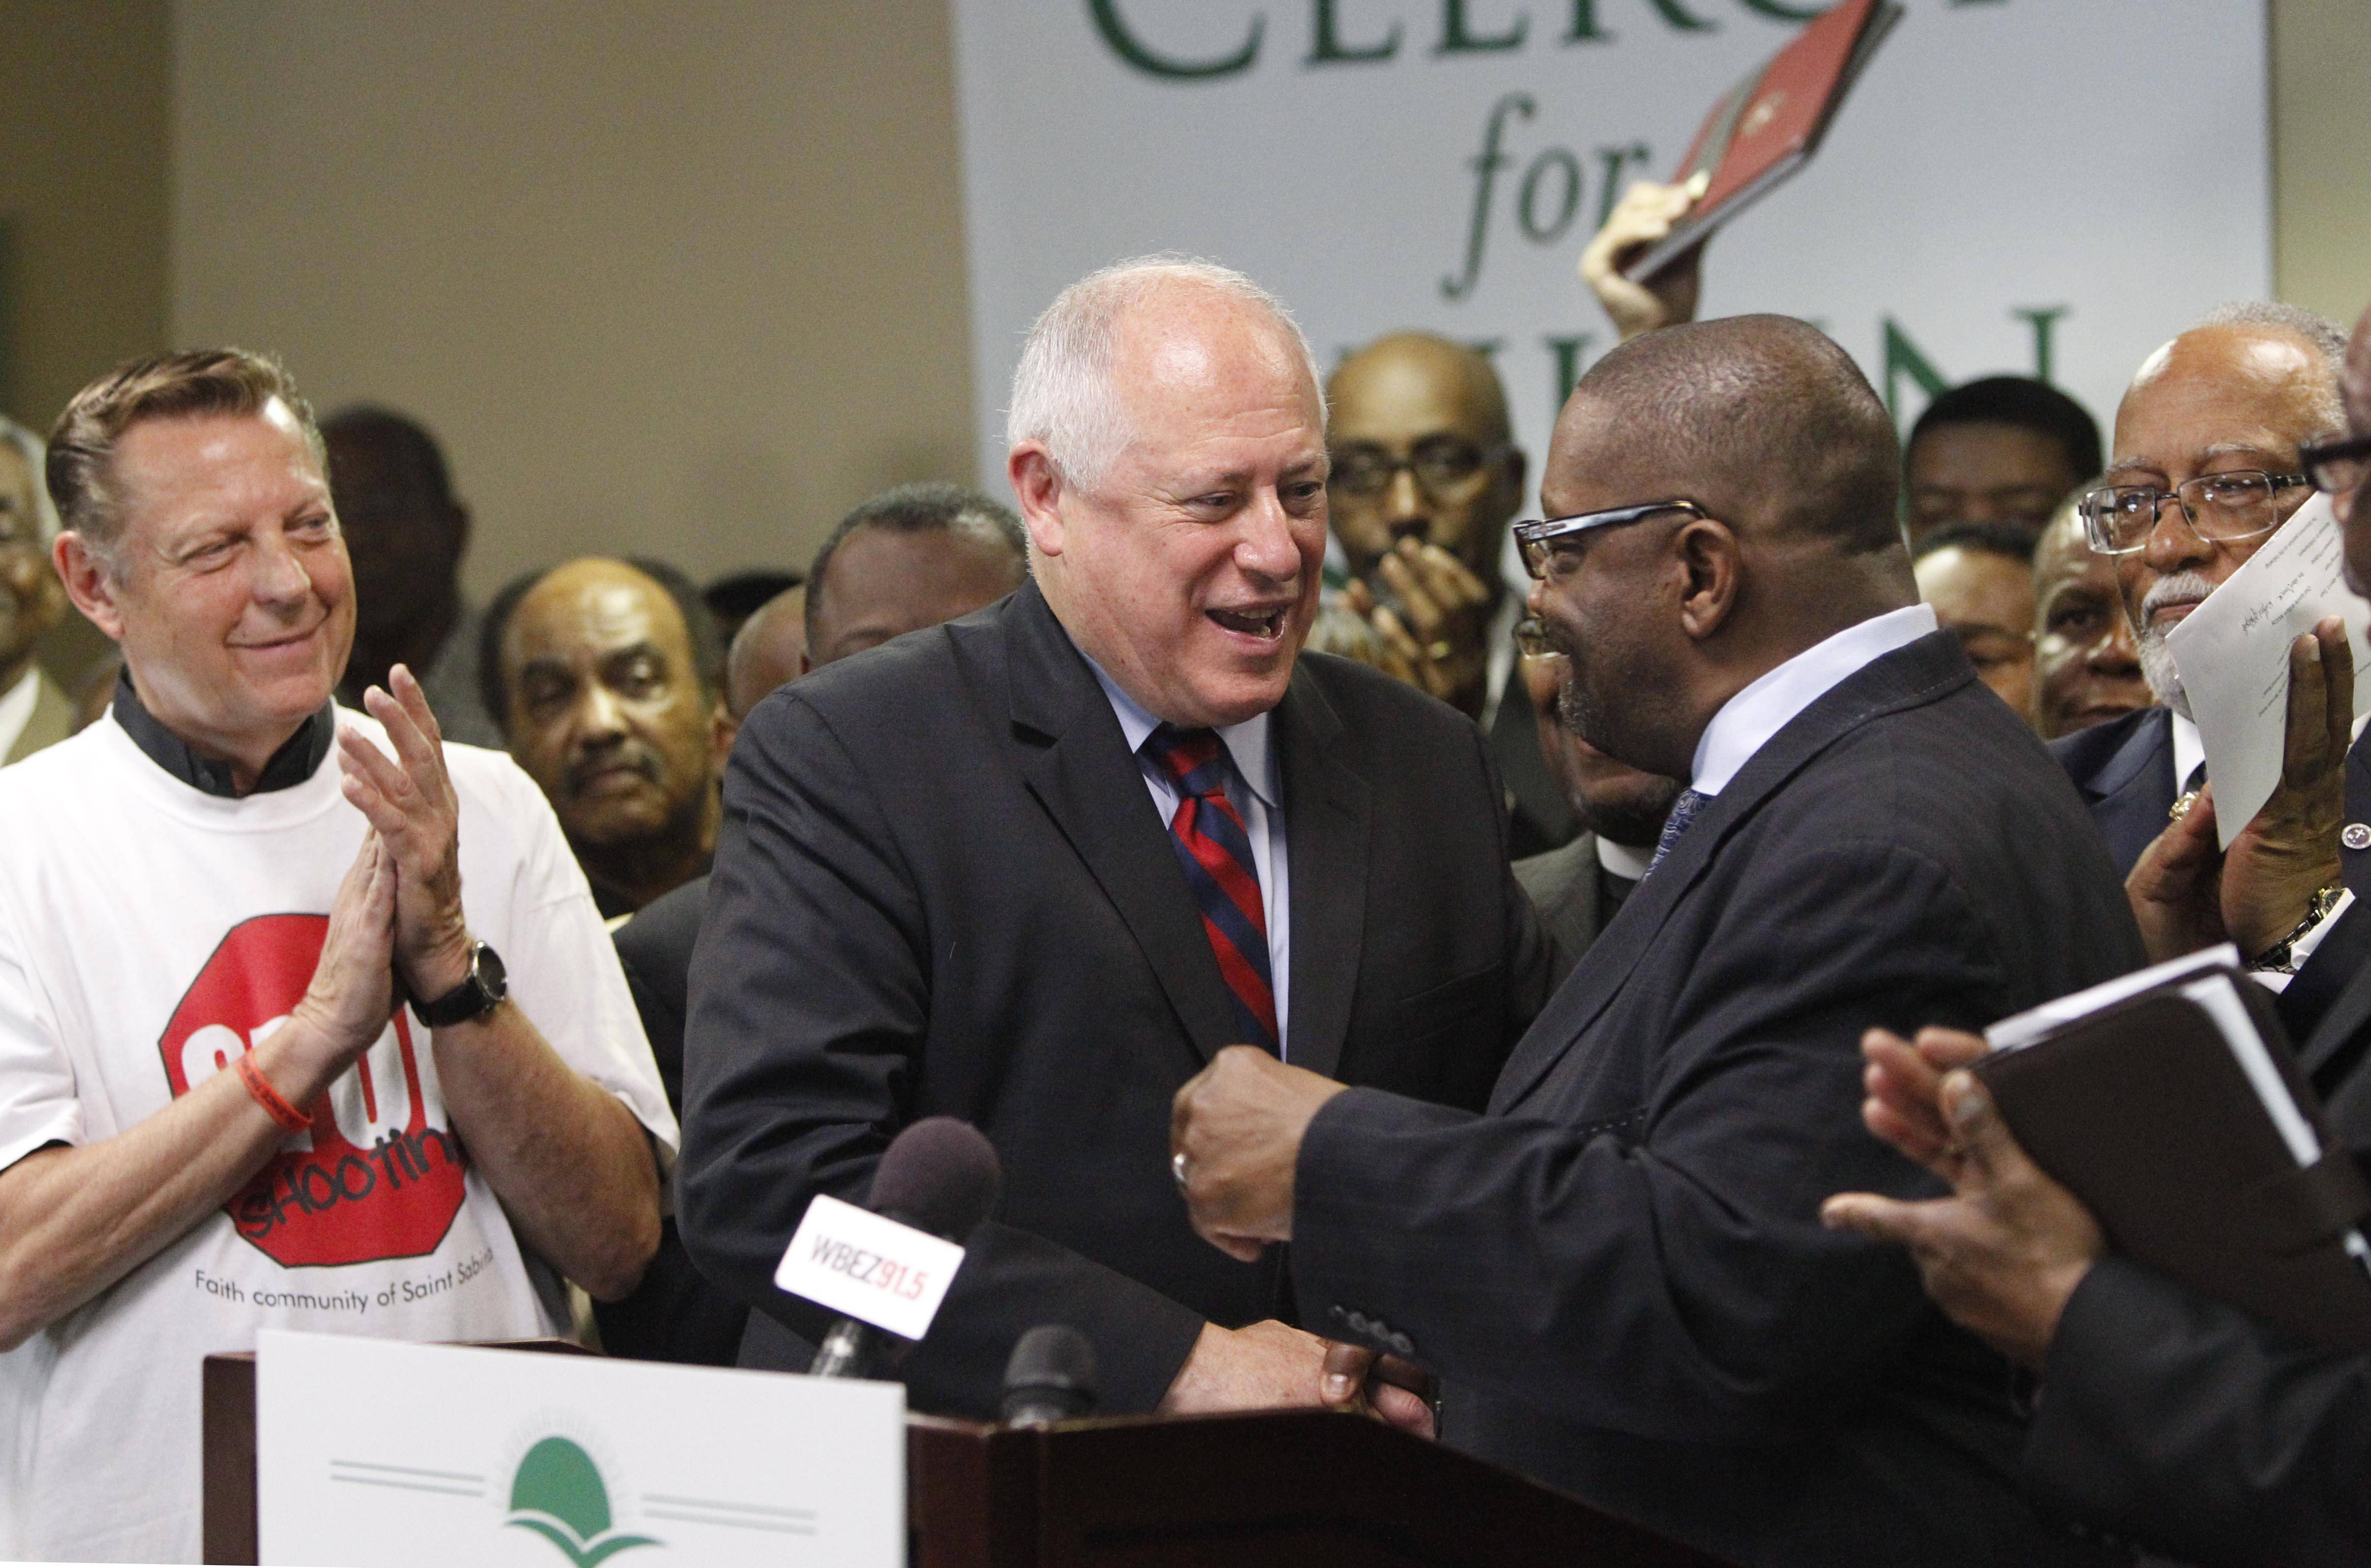 Gov. Patrick Quinn, center, shakes hands with the Rev. Walter Turner on Thursday in Chicago, where he received the endorsement of several clergy and community leaders in his re-election bid. At left is prominent Chicago priest Michael Pfleger.